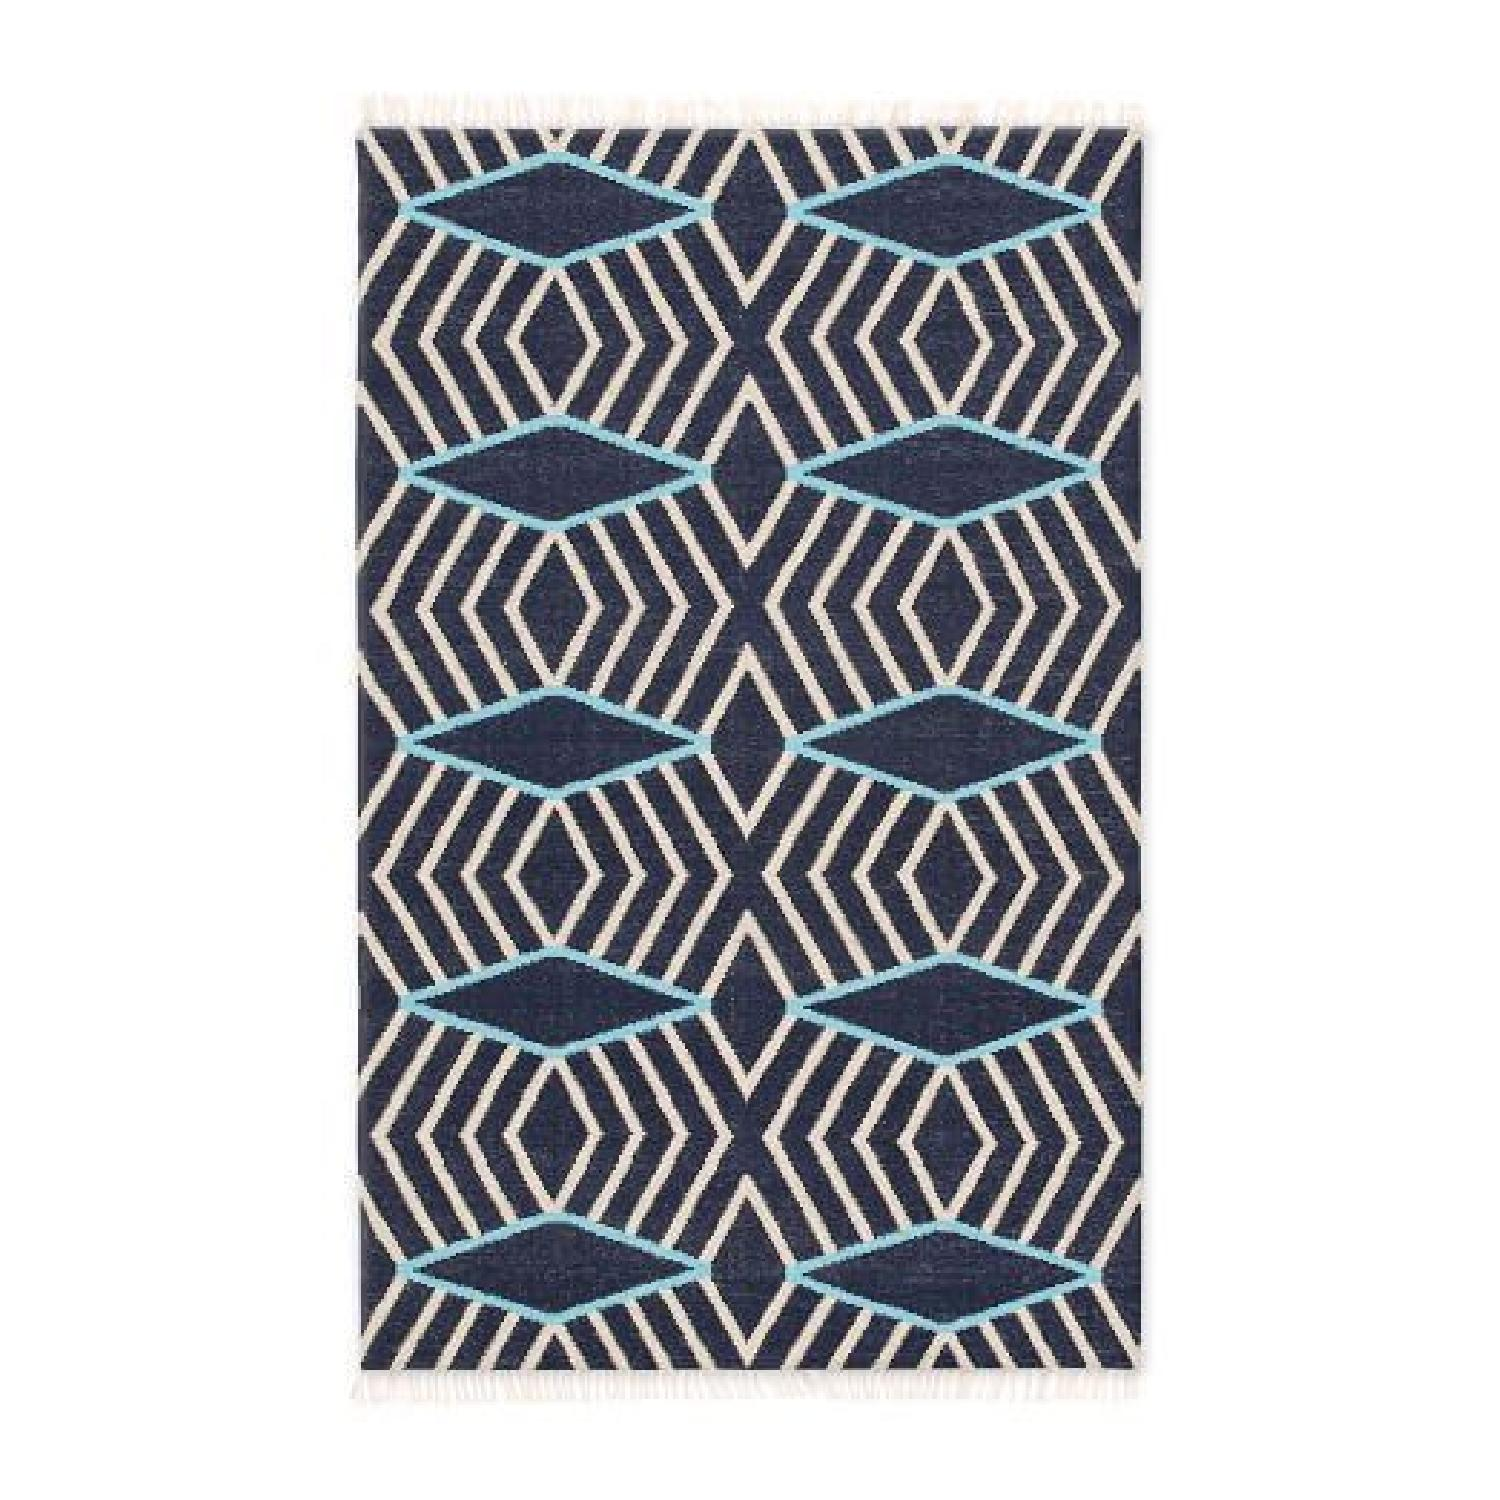 West Elm Kite Wool Kilim Rug - image-0